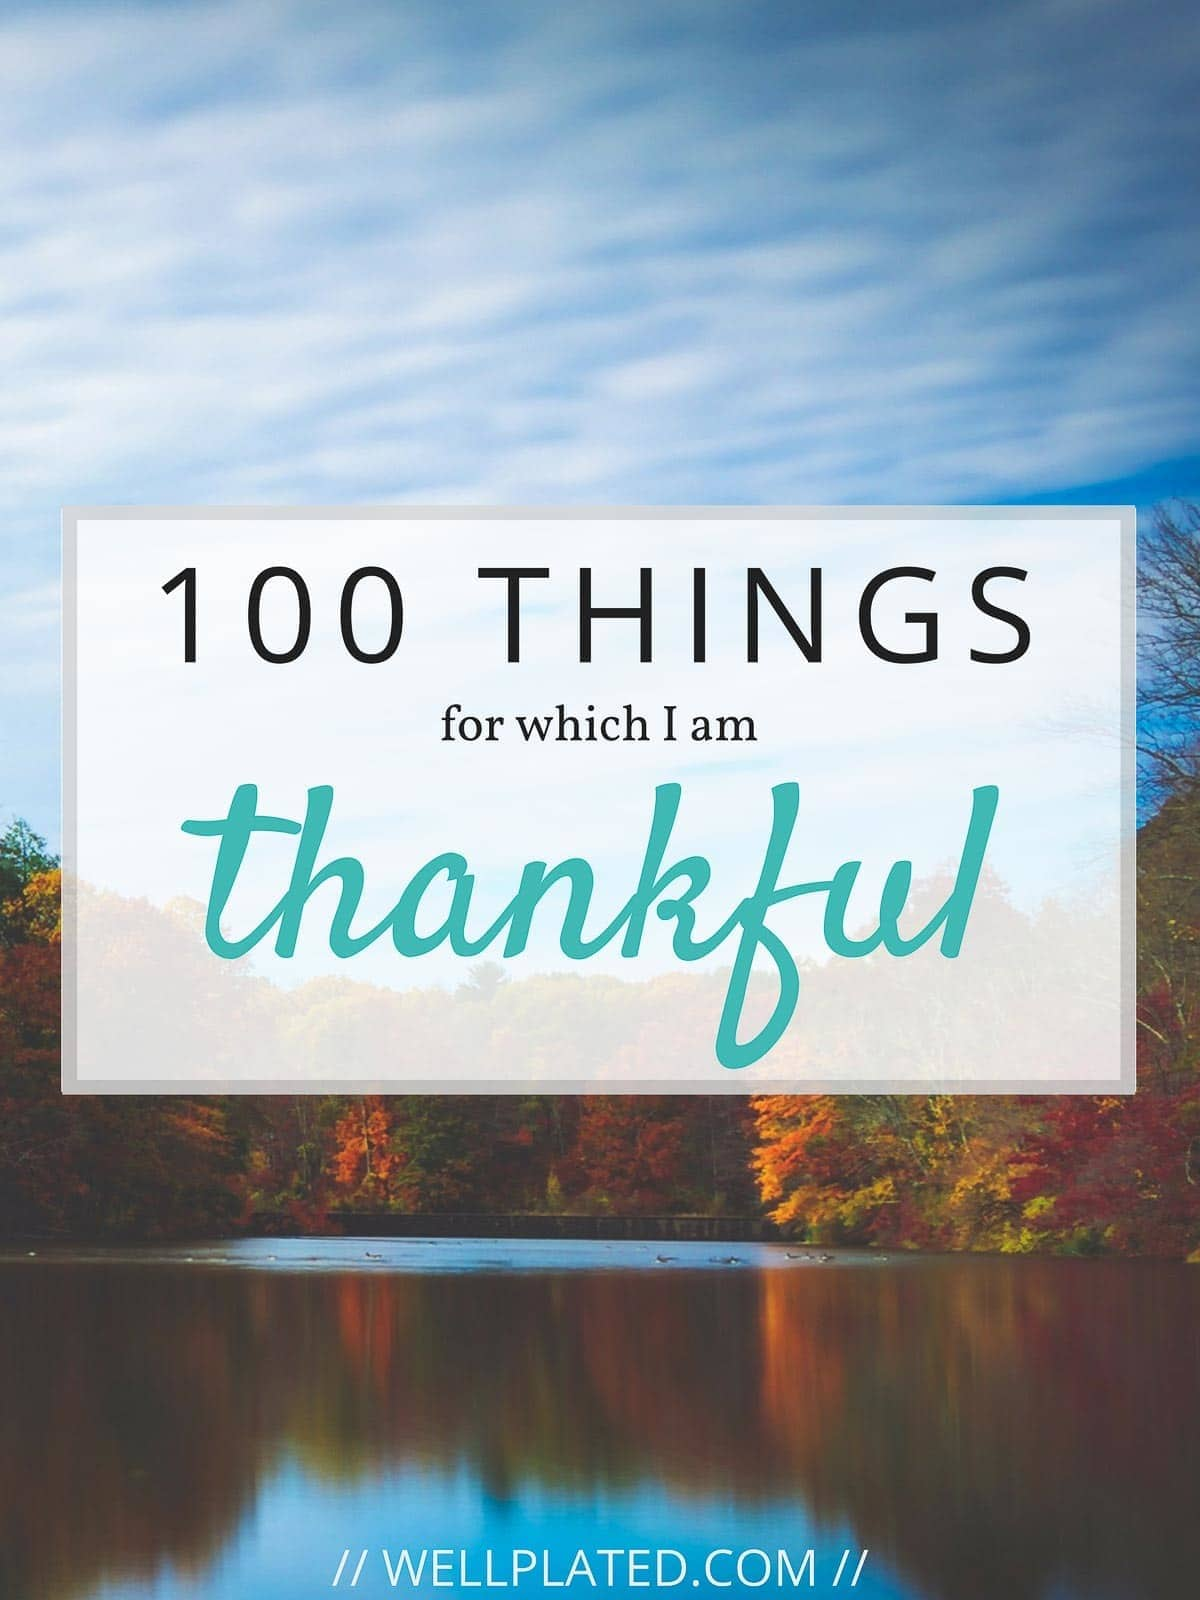 Count your blessings! Here are 100 things to be thankful for this Thanksgiving and every day! #gratitude From wellplated.com @wellplated